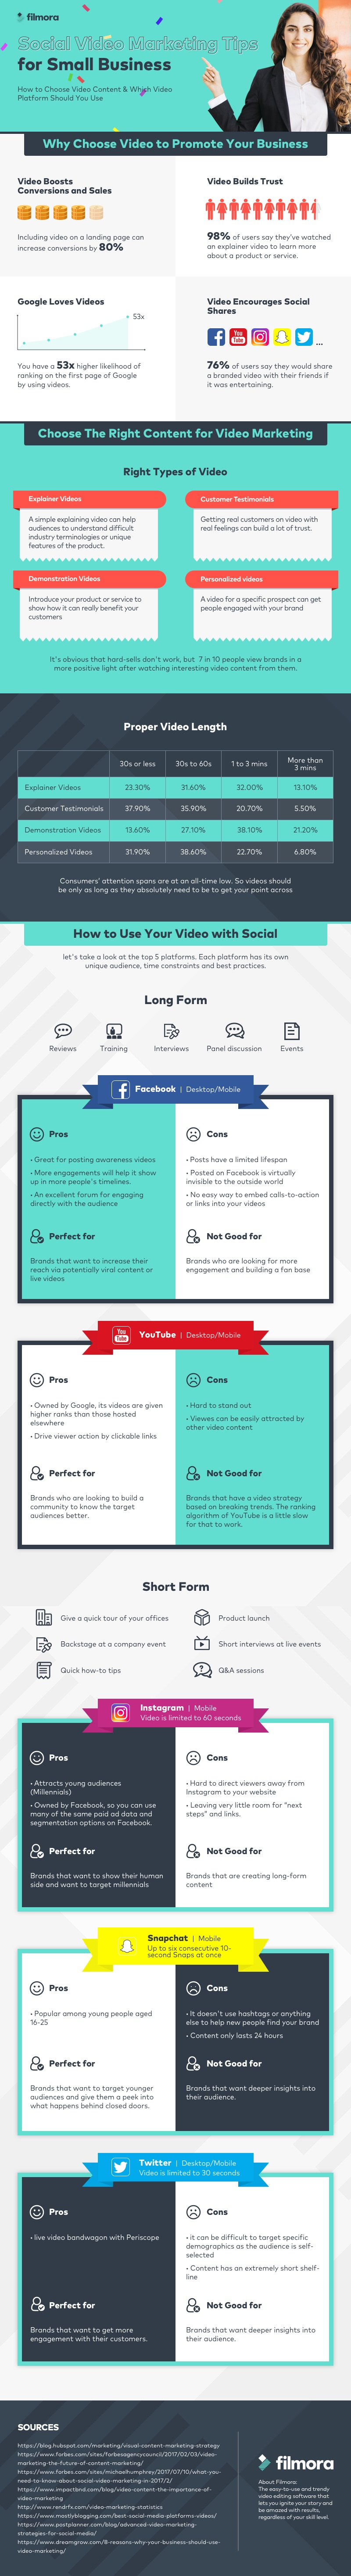 Social video marketing tips for small businesses highlighted through data visualisation in this infographic for Comms Axis